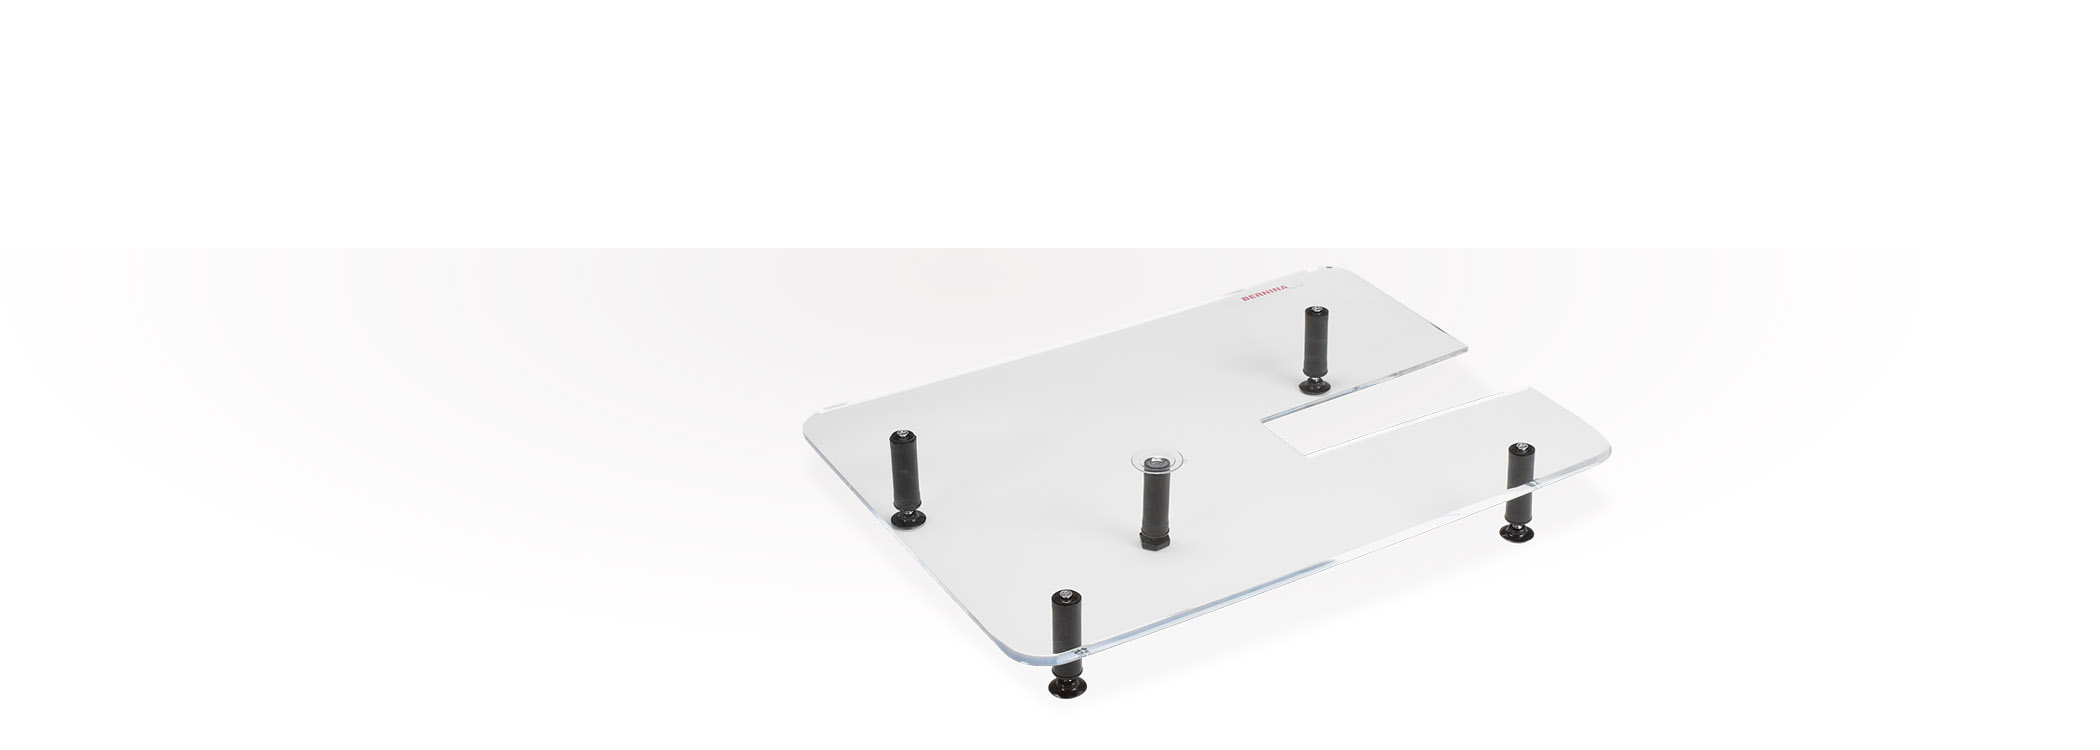 Bild: Plexiglass extension table for quilting